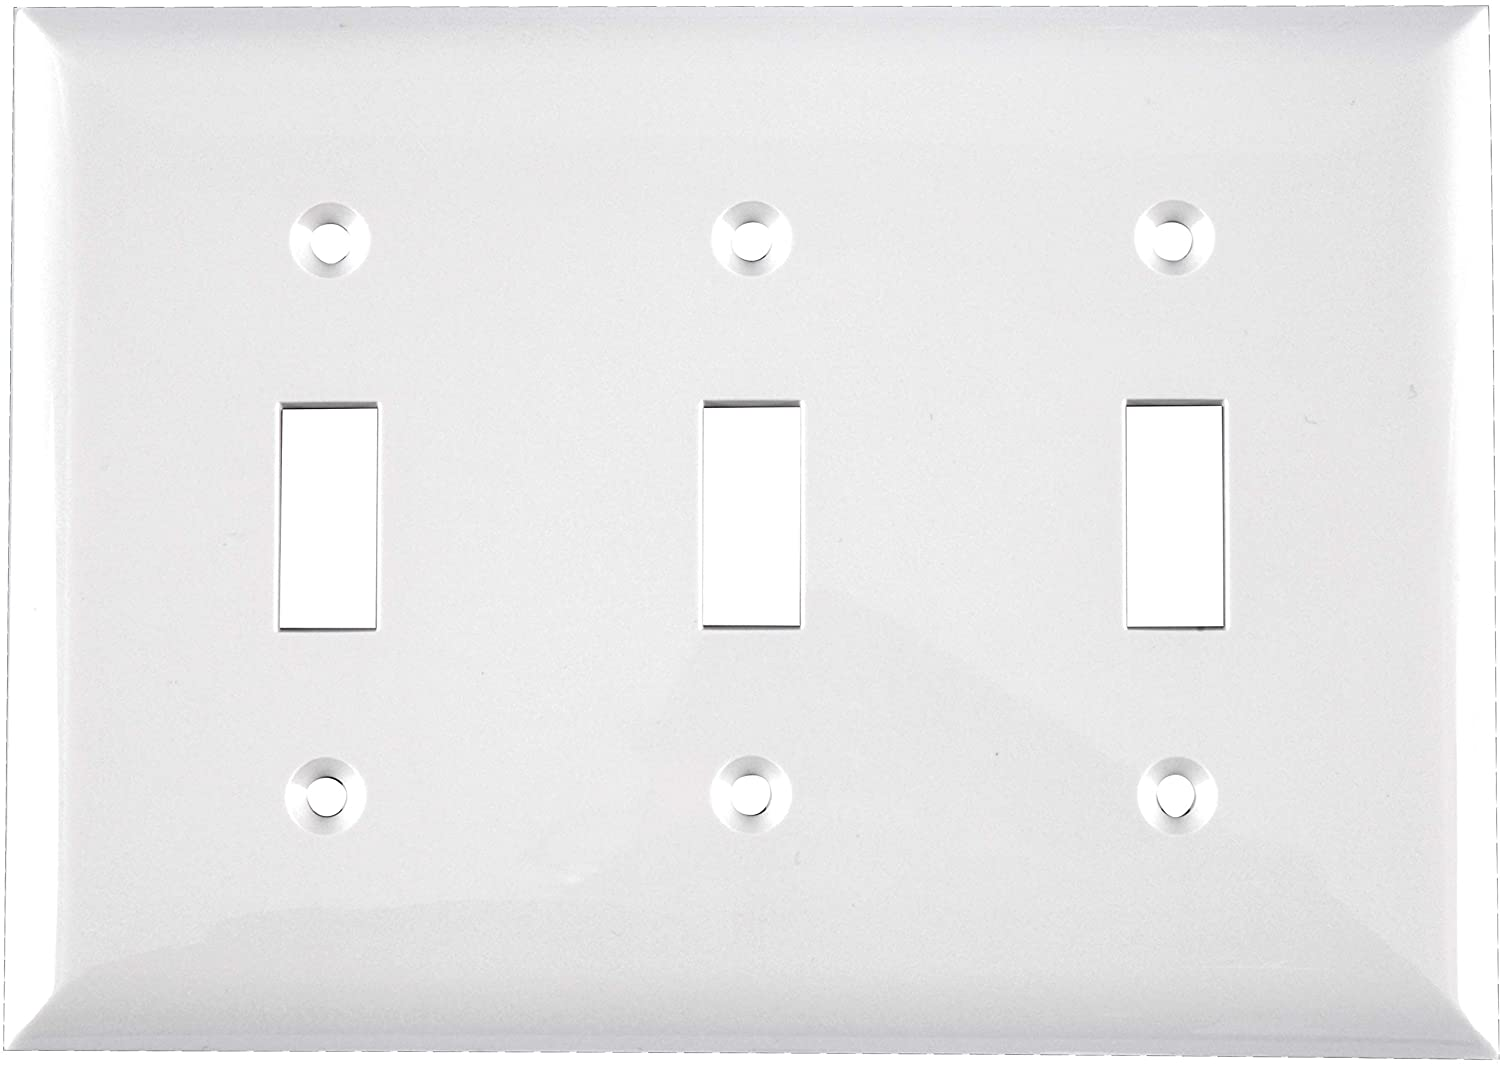 """Power Gear Triple Wall Plate Cover, 3 Gang, Unbreakable Faceplate, 6.5"""" x 4.5"""", Screws Included, White, 50166, Standard Toggle Switch Wallplate"""